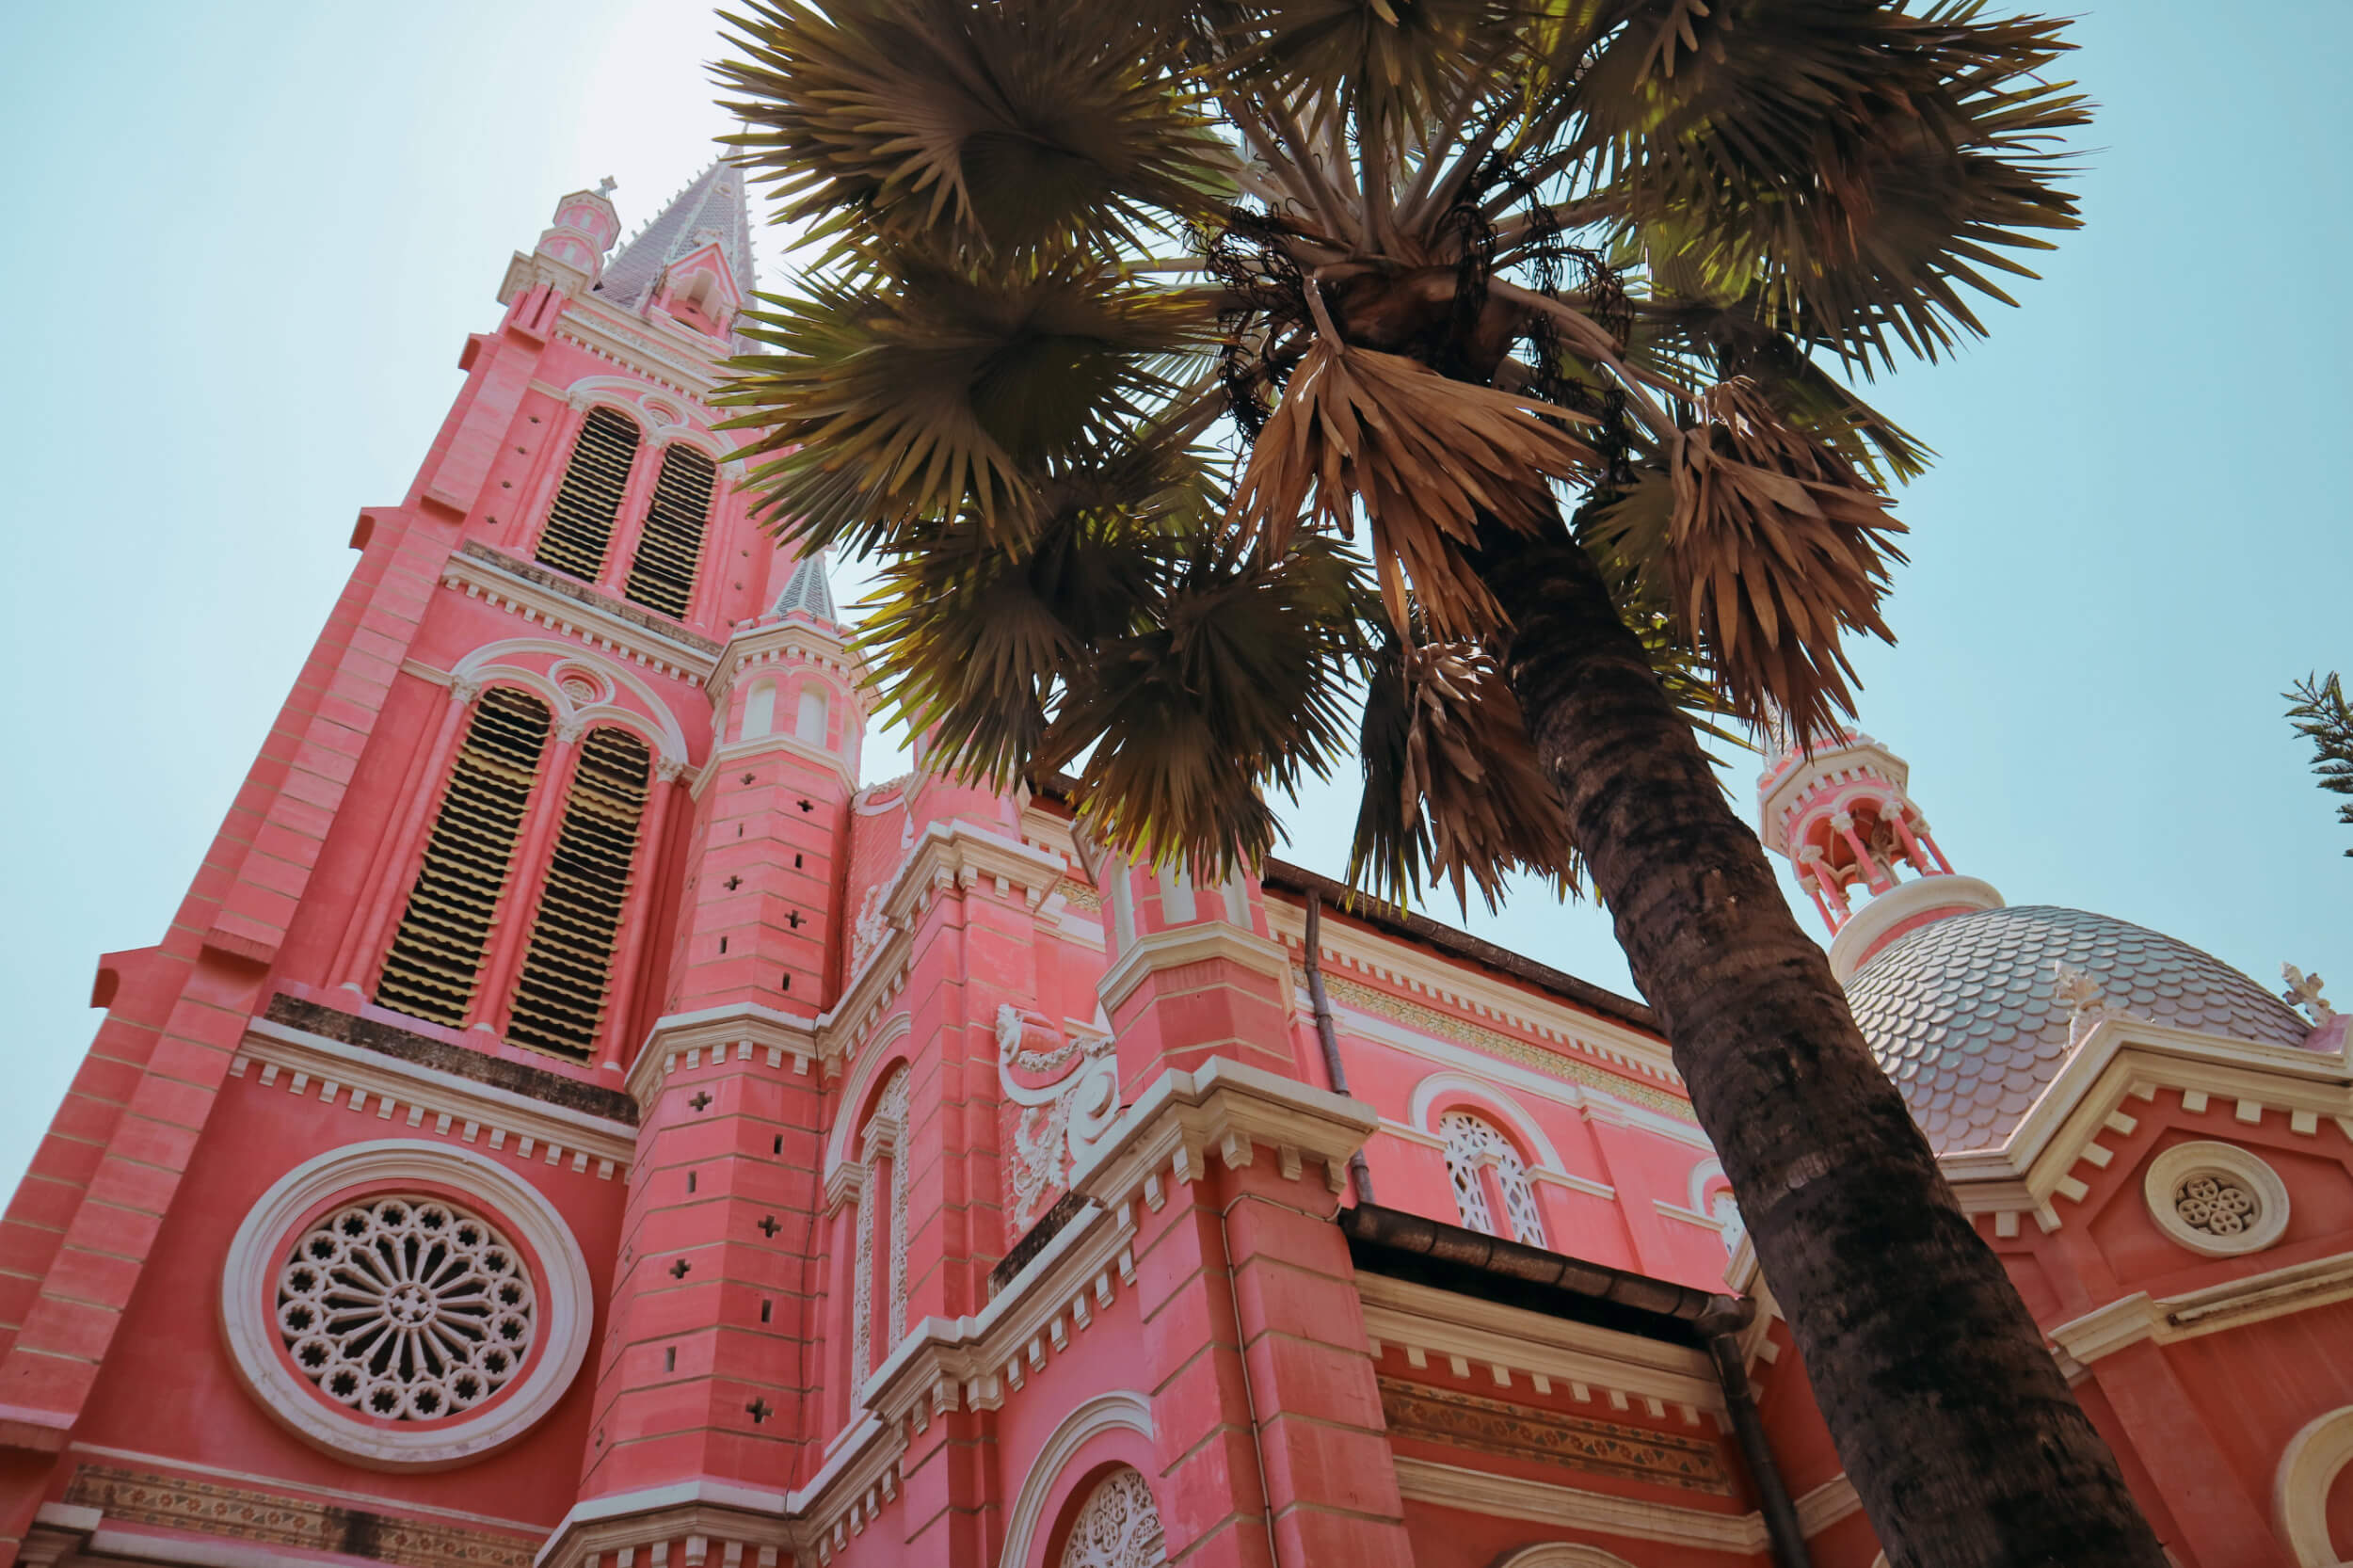 Tan Dinh Church: the pastel-pink gothic church in Ho Chi